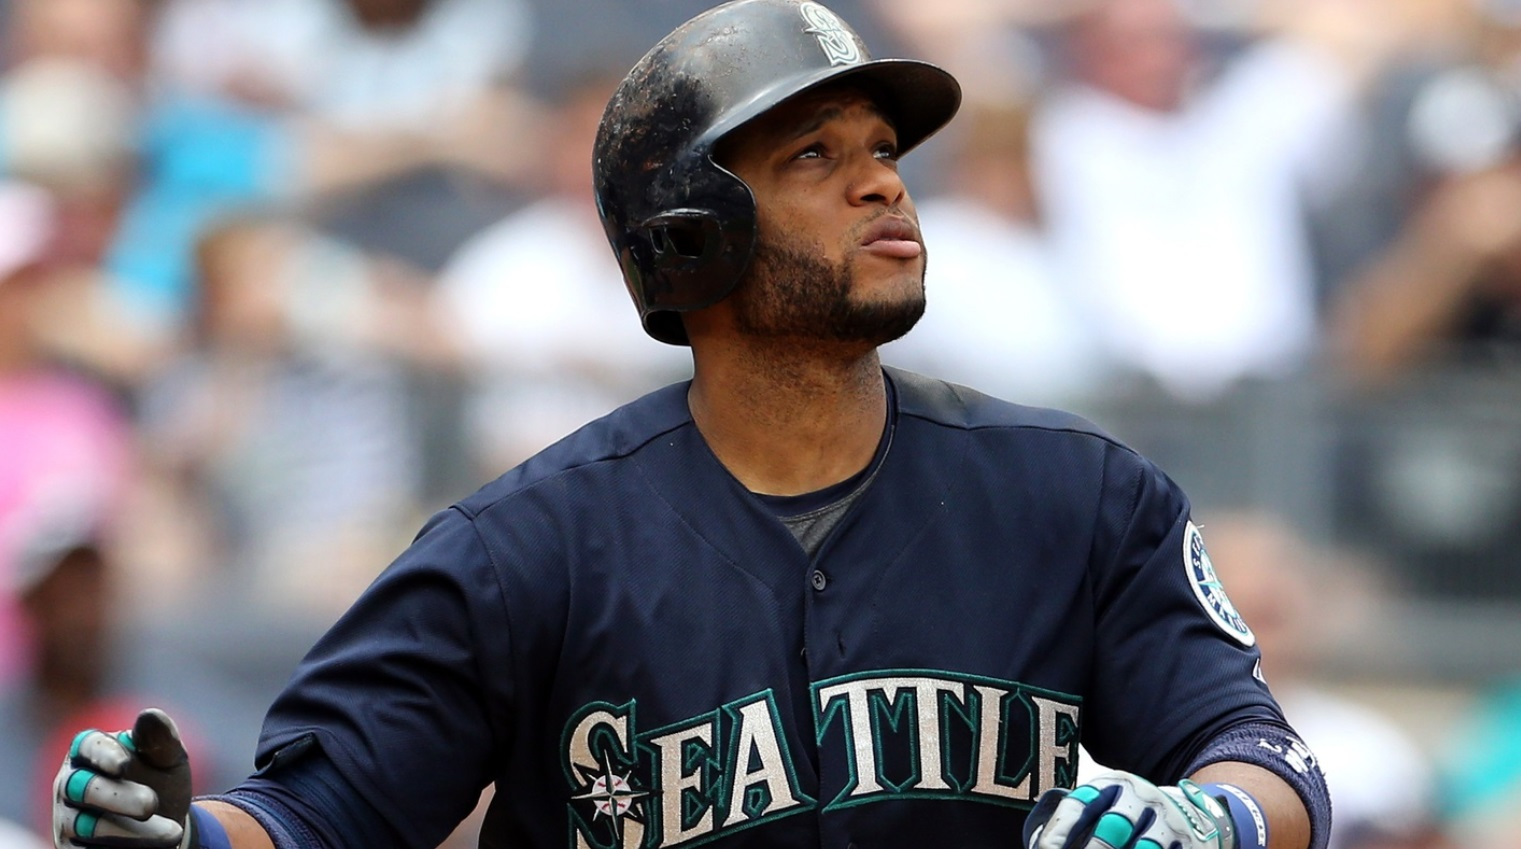 Robinson Cano top paid in baseball